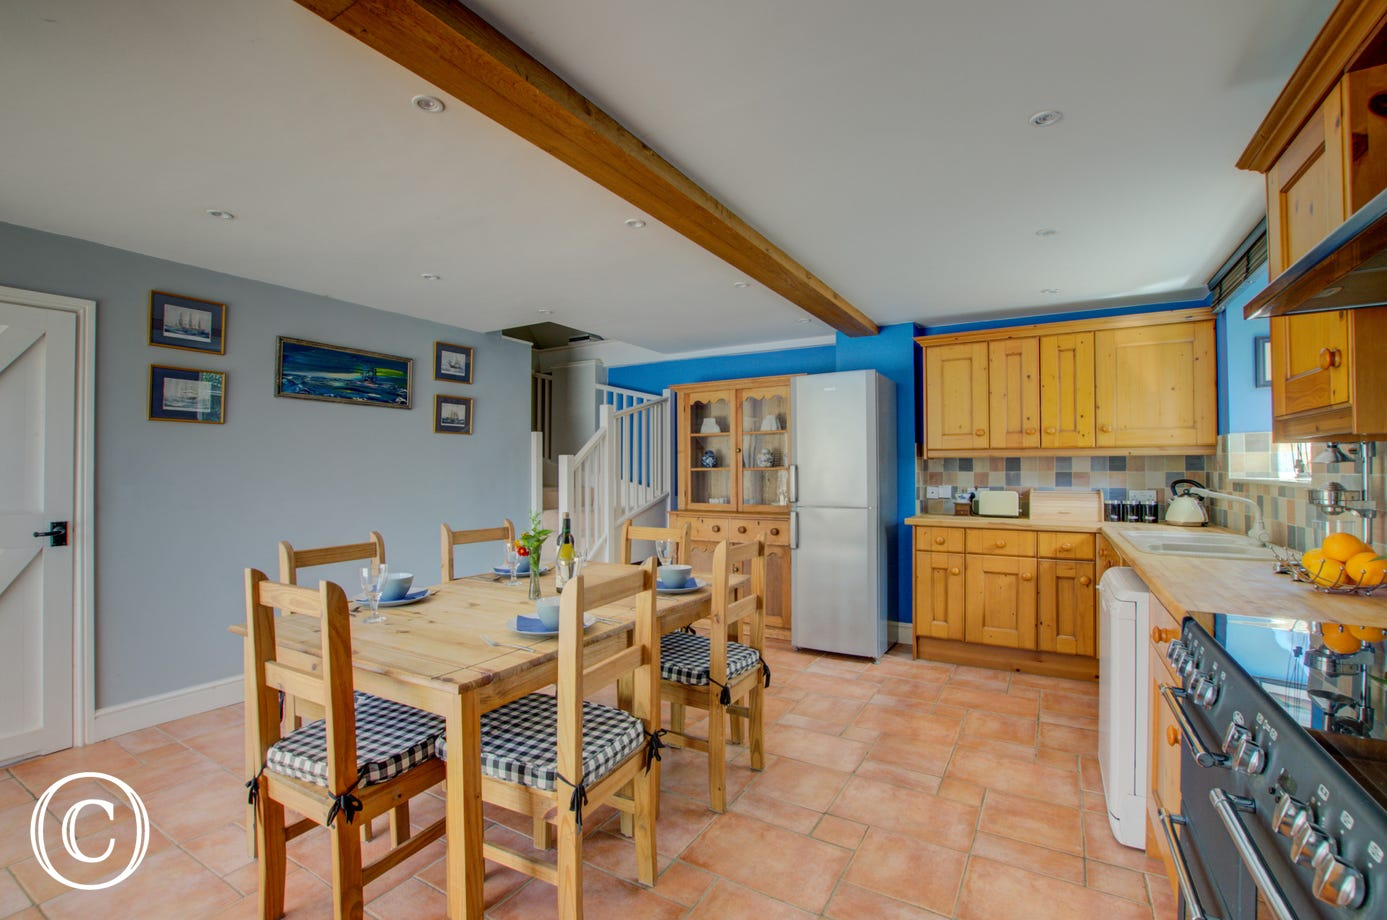 Spacious kitchen - perfect for a family get together